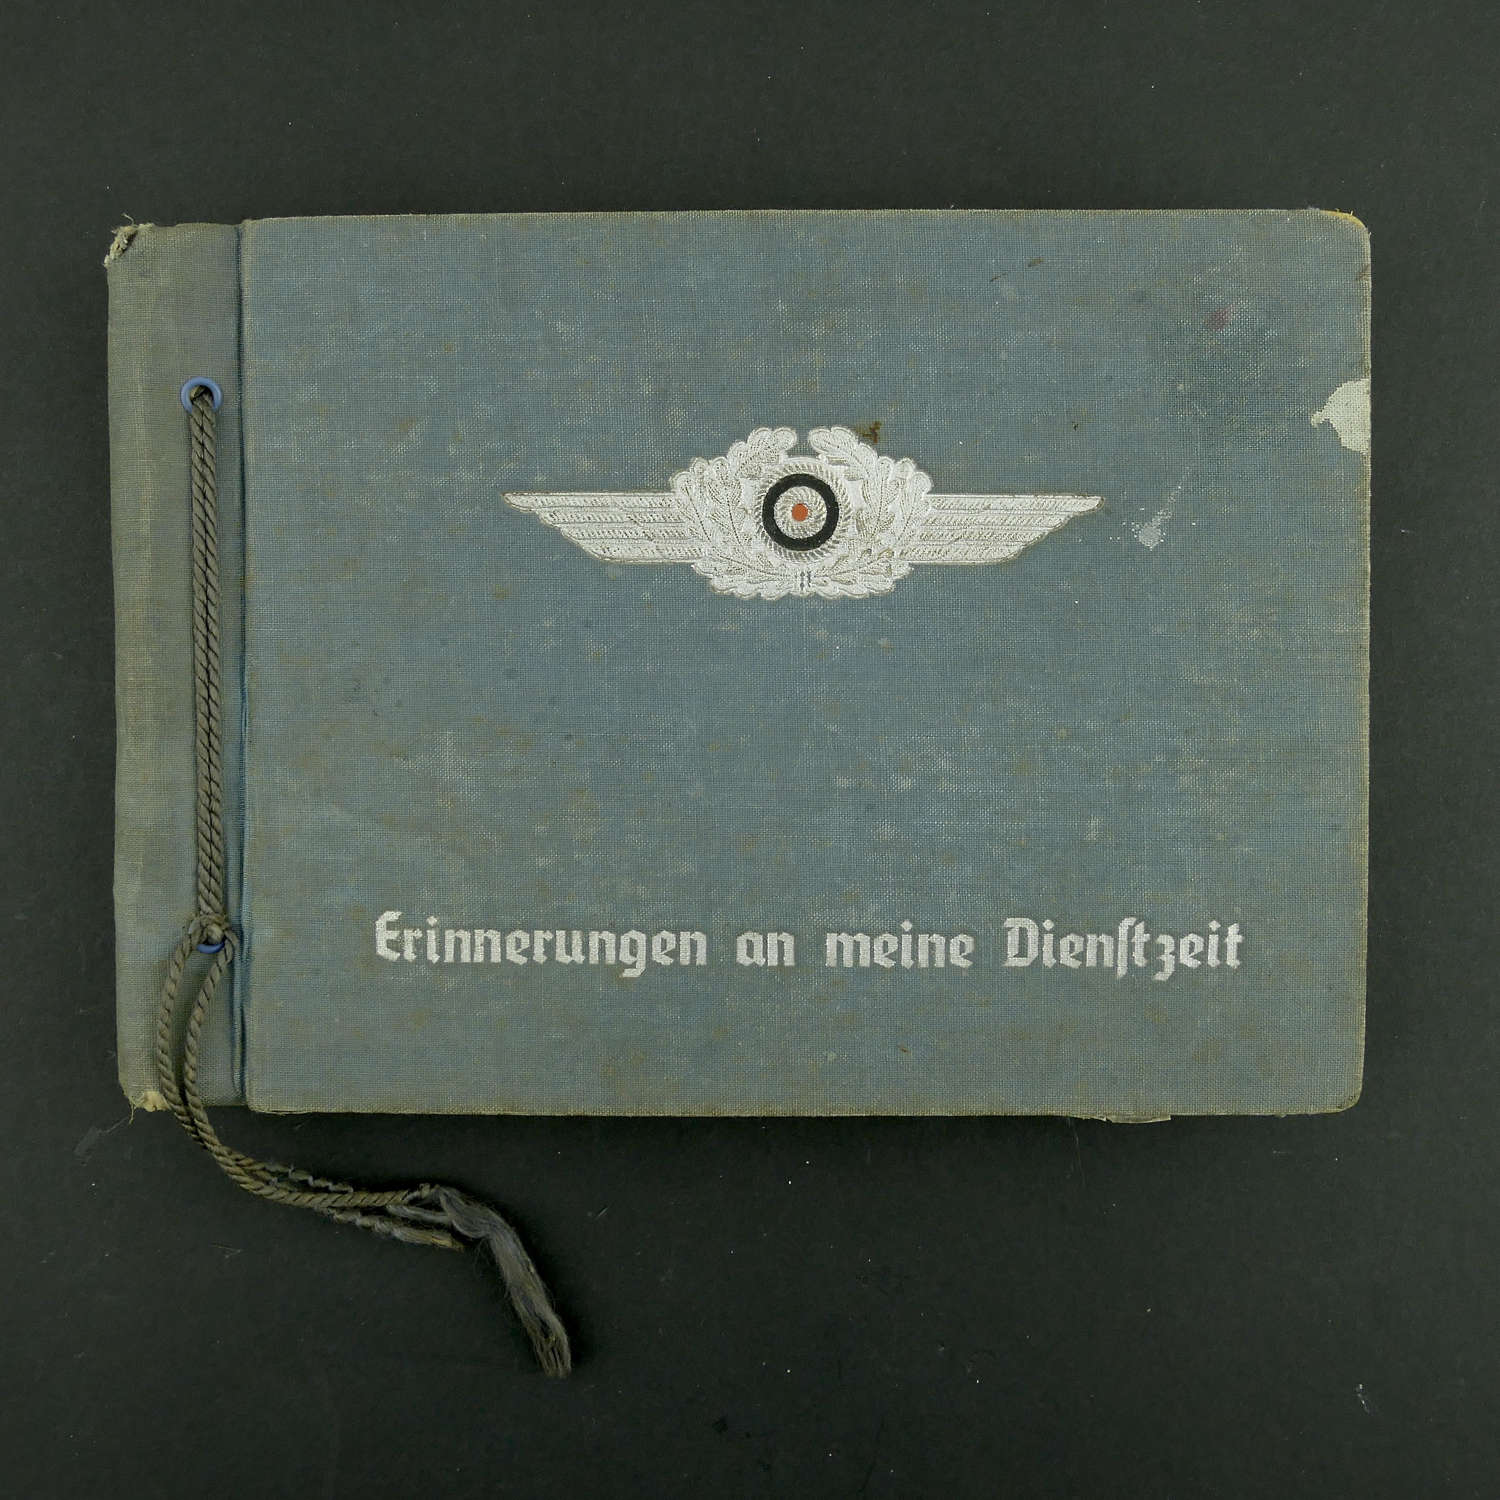 Luftwaffe photograph album